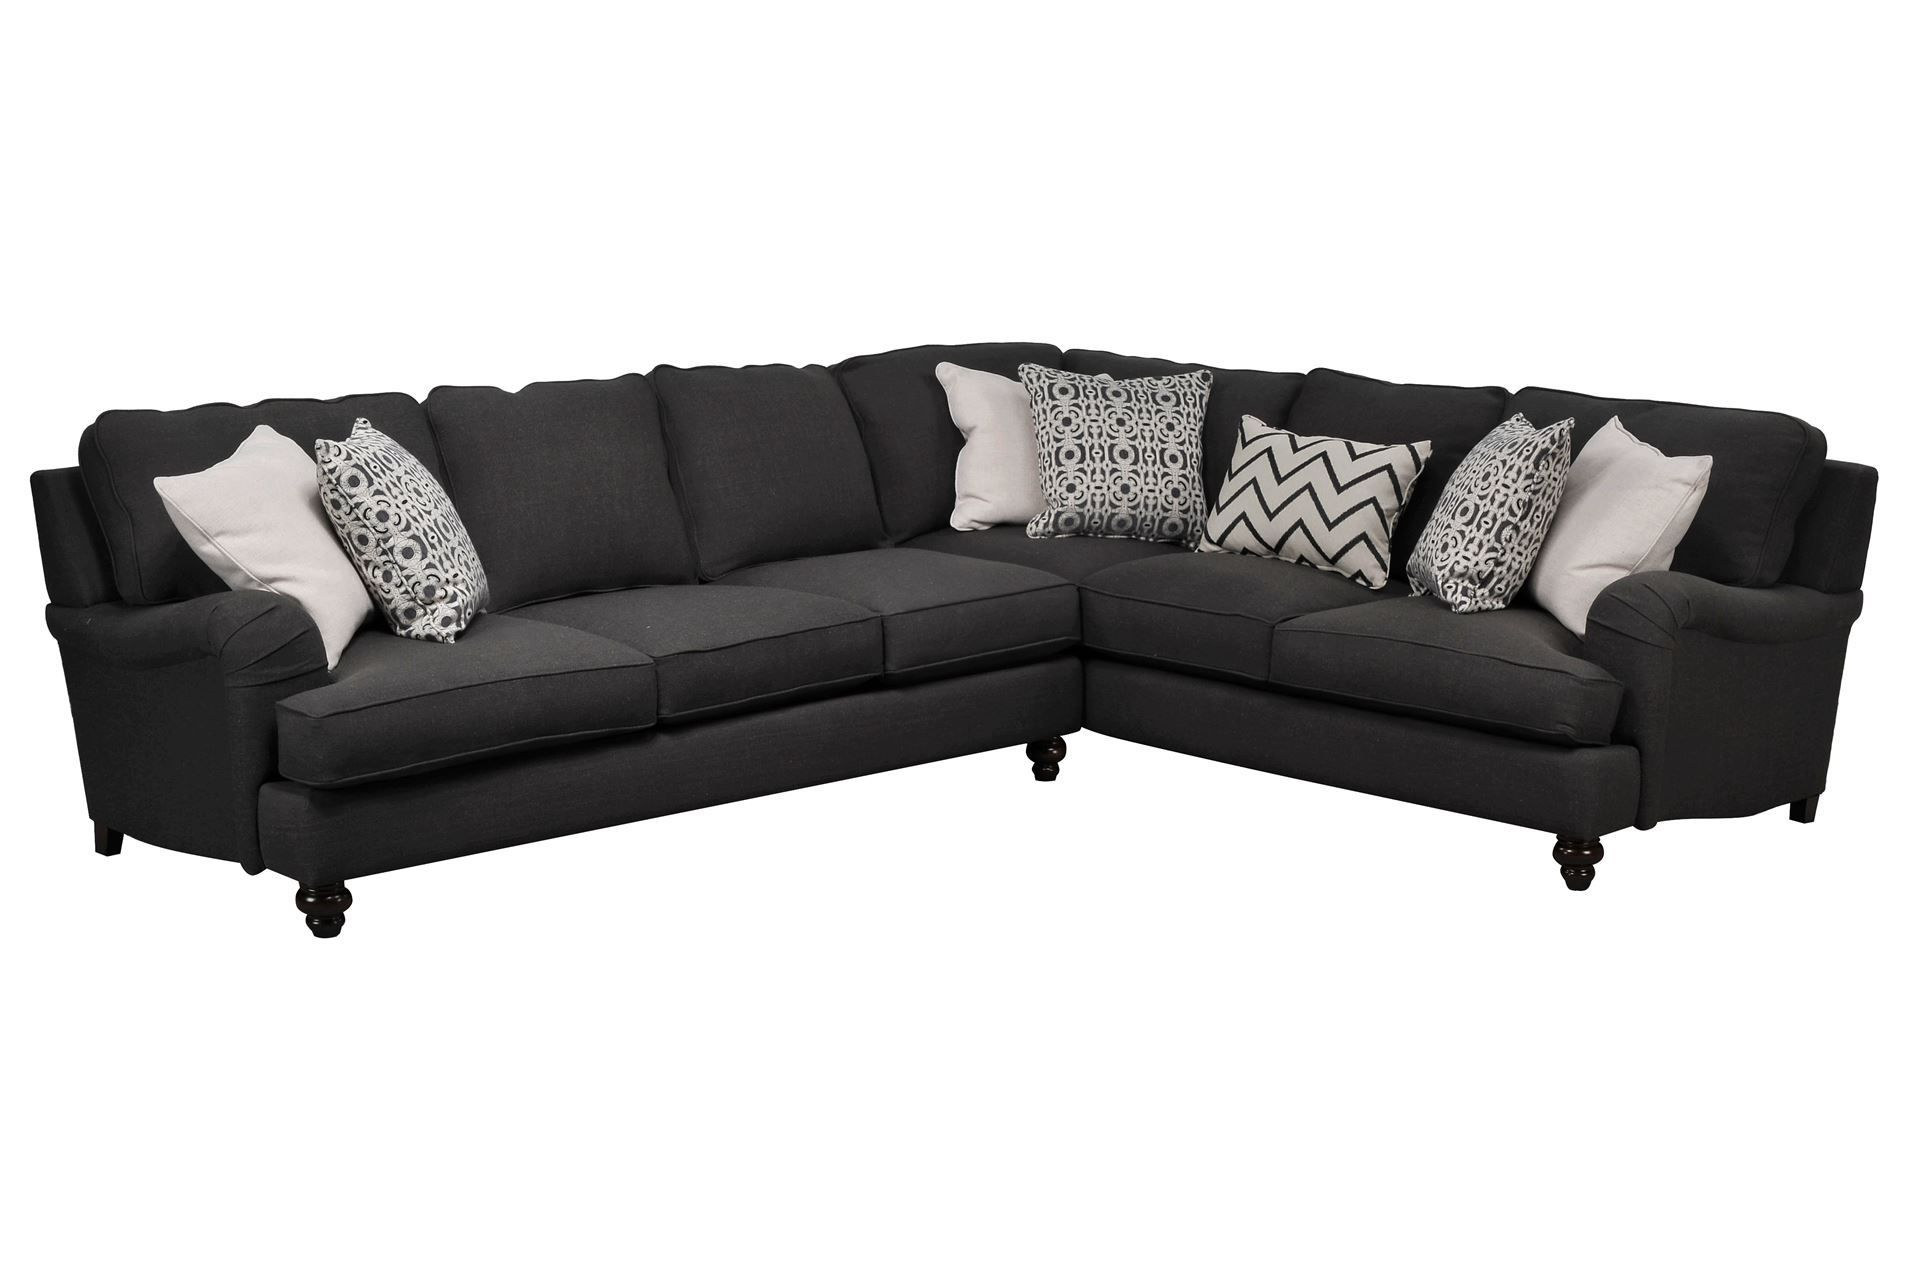 Tolliver 2 Piece Sectional | Home Decor | Pinterest | Living spaces on